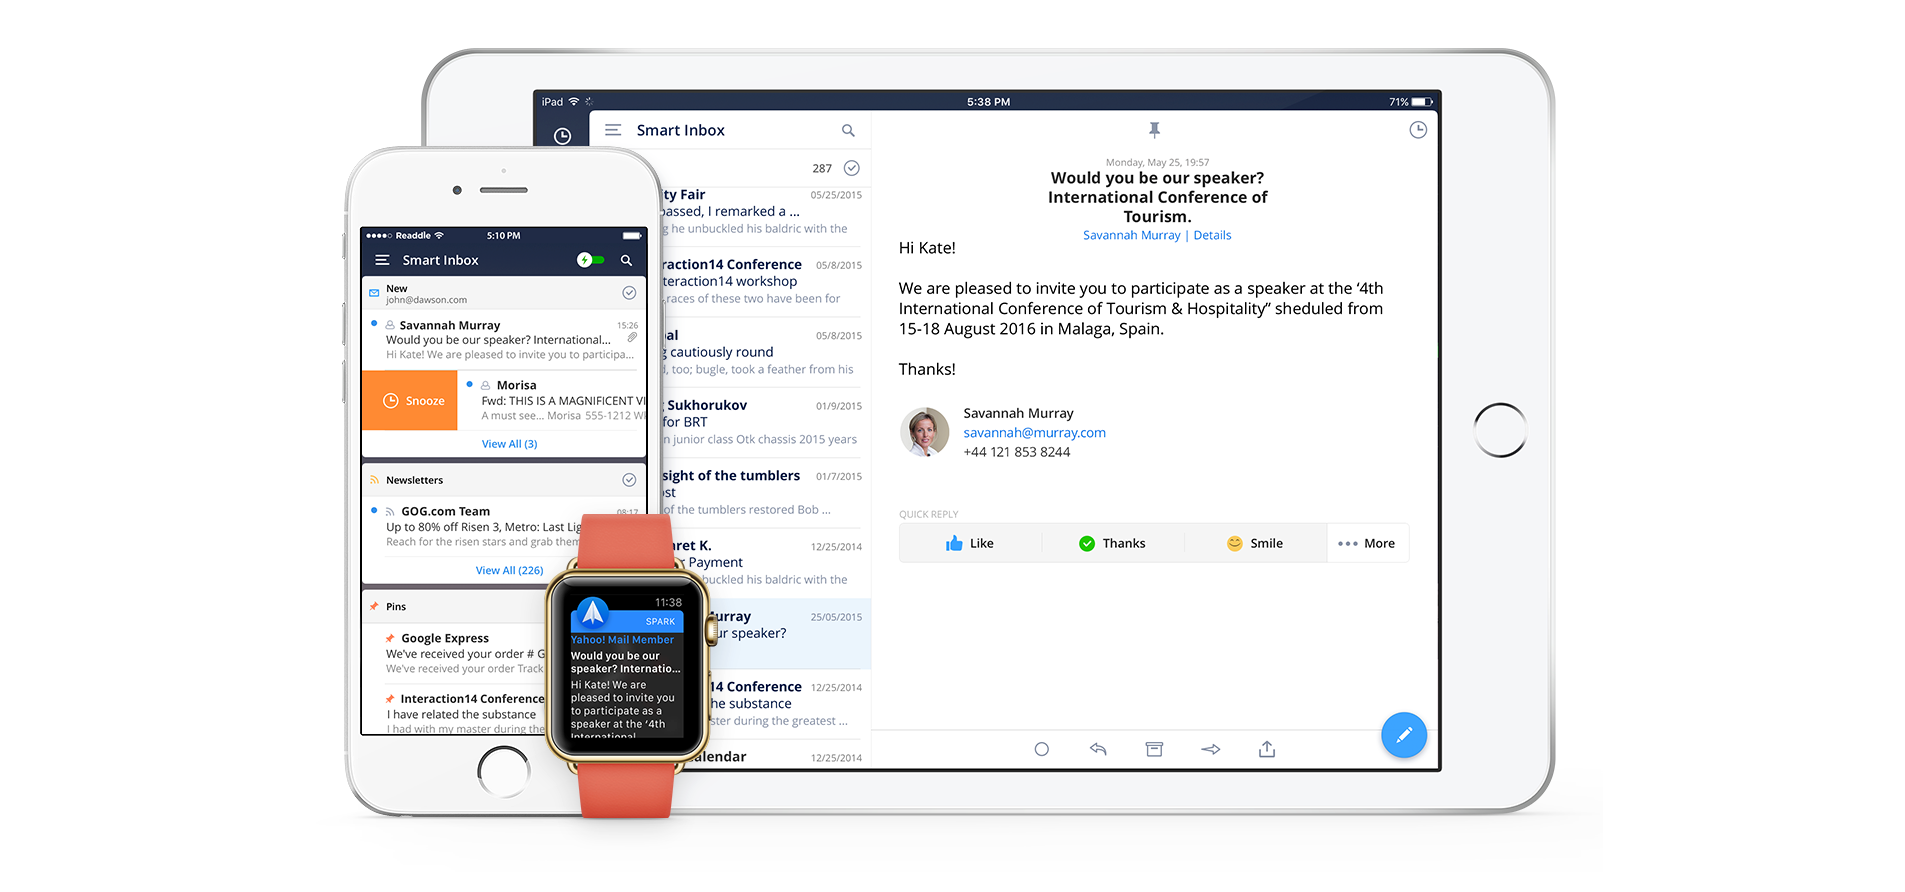 Powerful email app Spark lands on the iPad with a new update